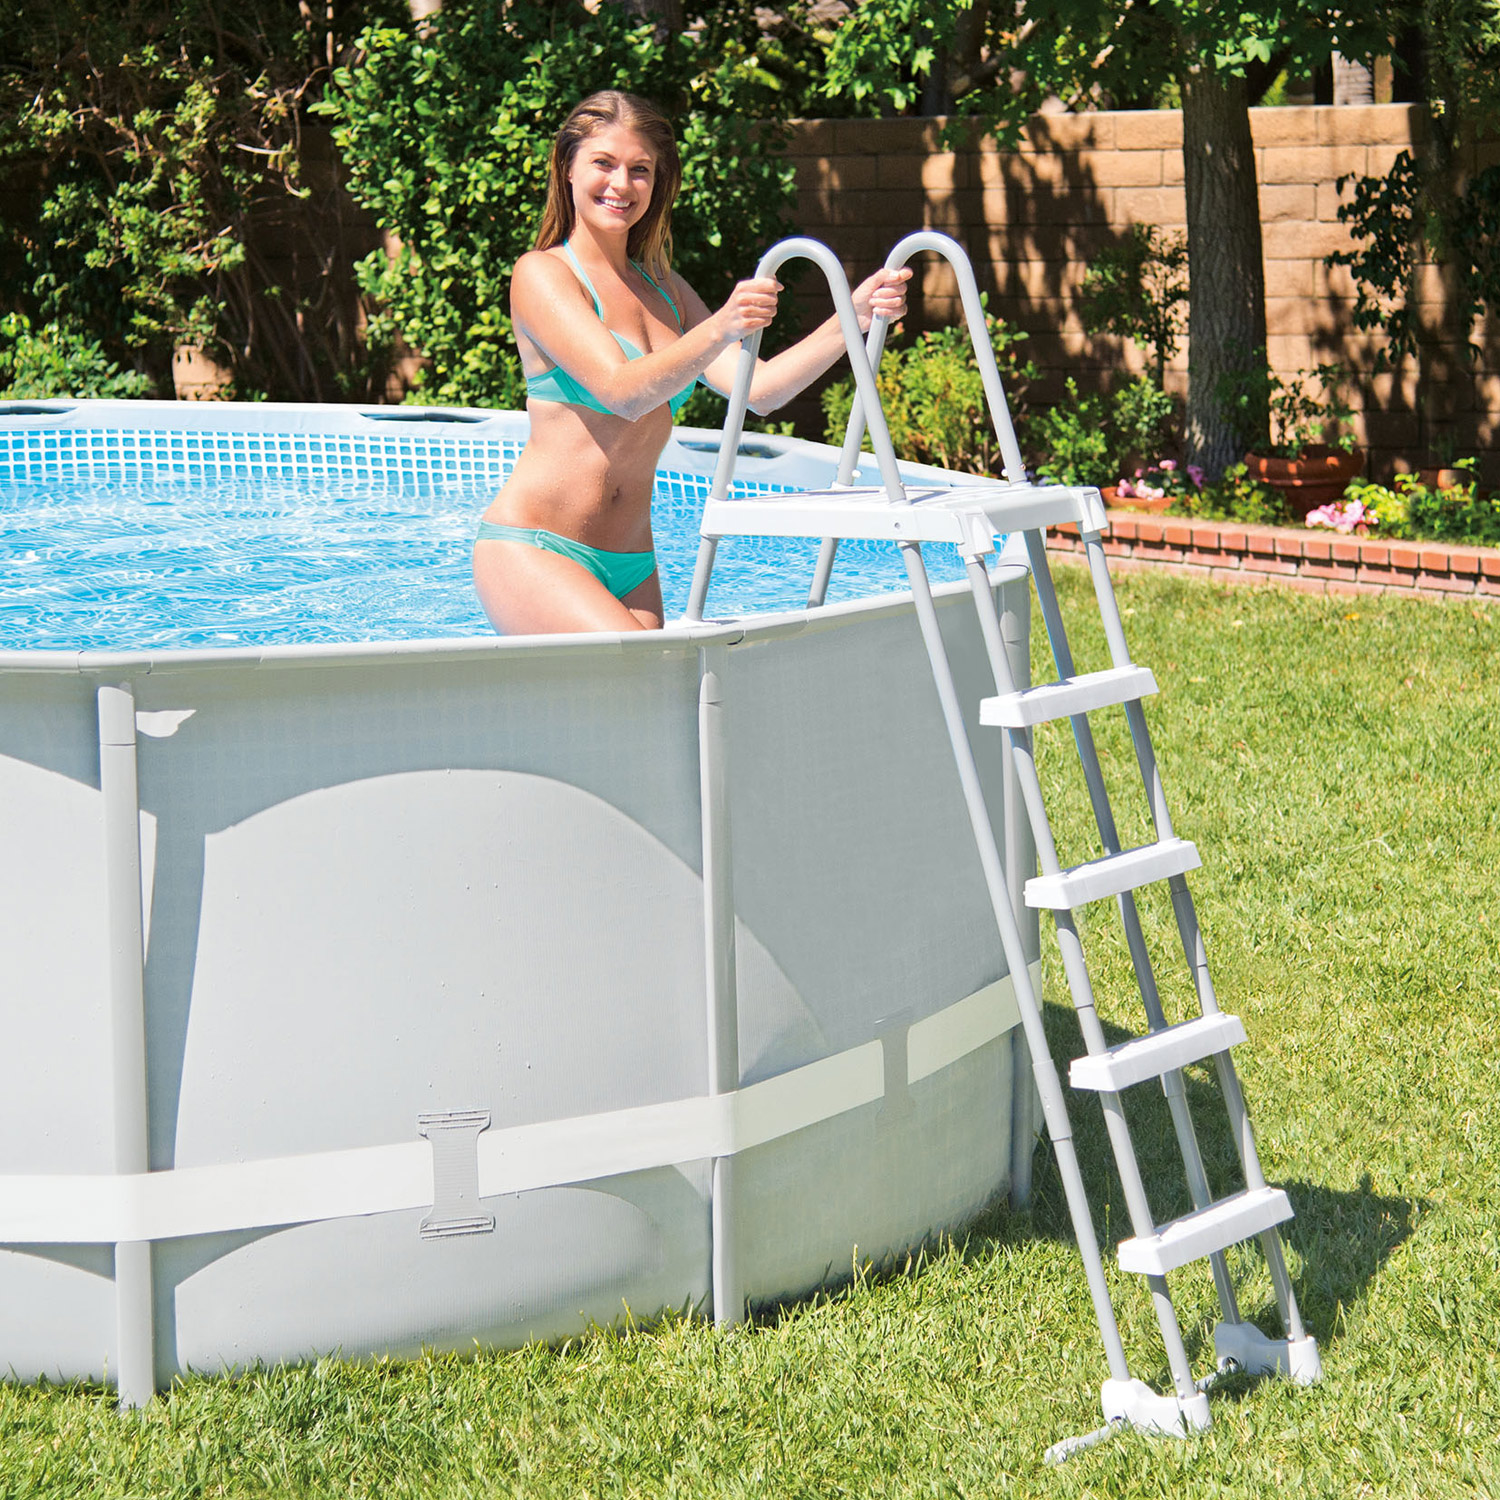 Pool Komplettset Intex Intex Swimming Pool Frame Ultra Rondo 488x122 Cm Komplettset